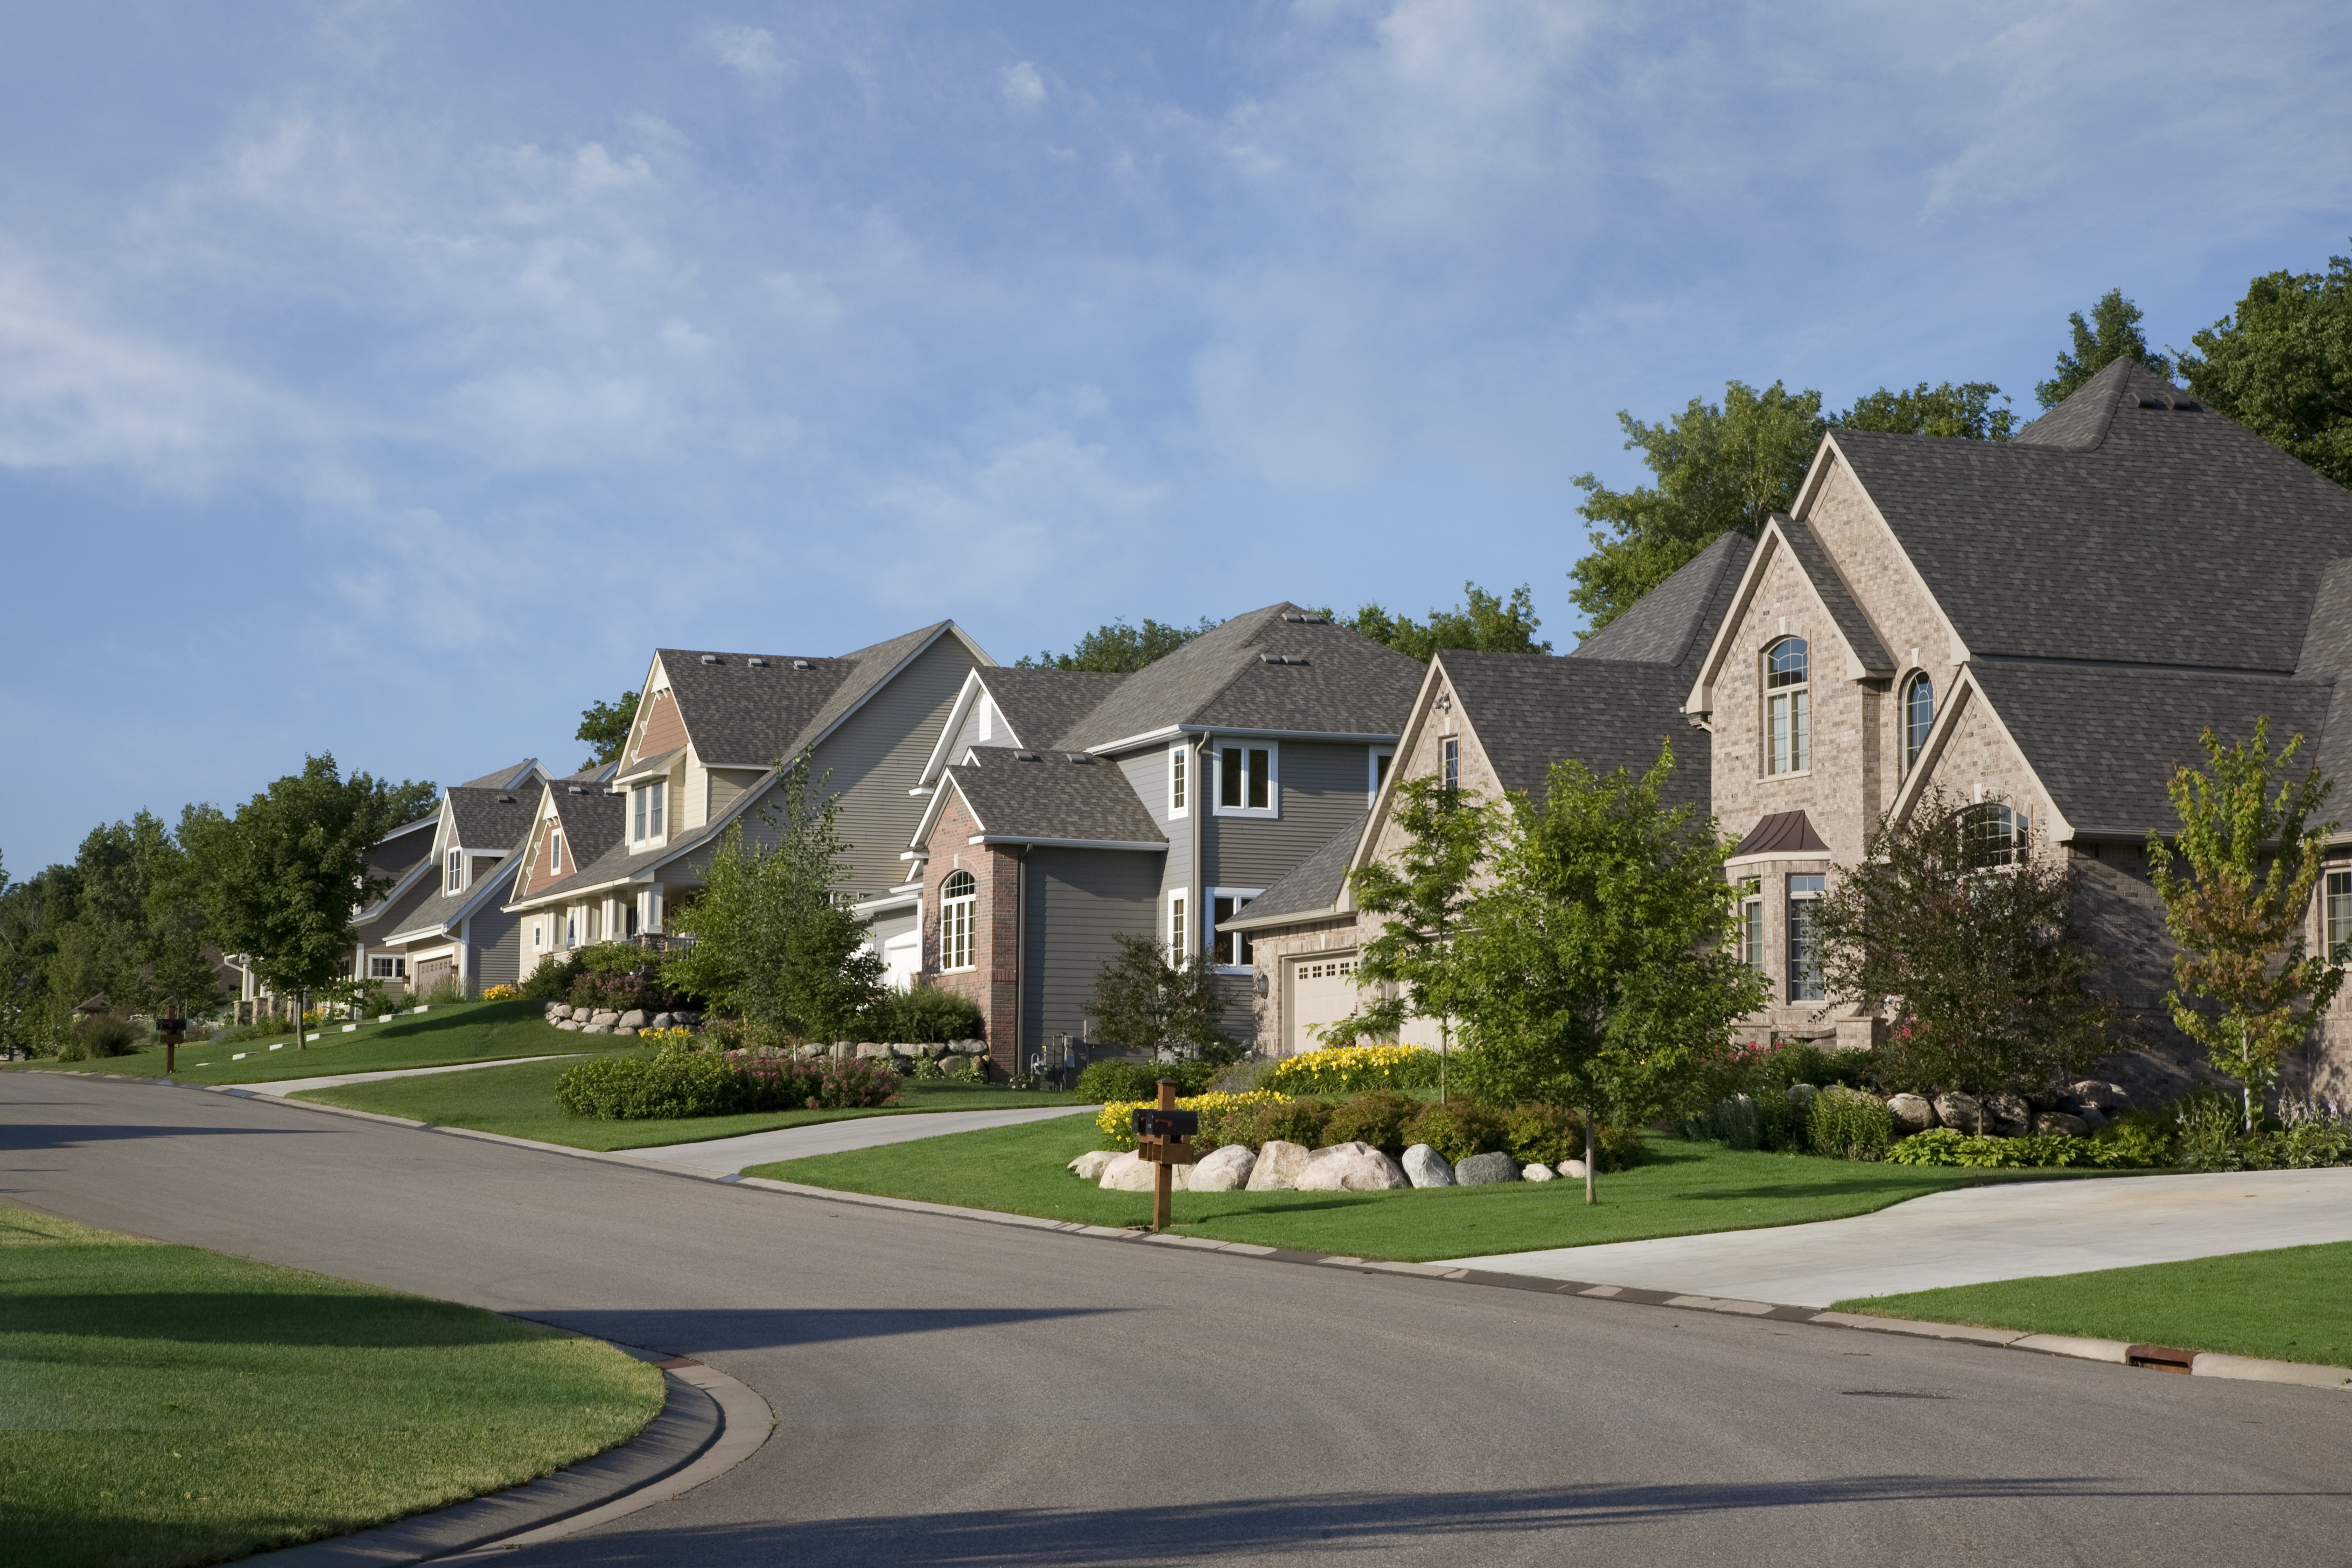 Upscale houses on a suburban street in t